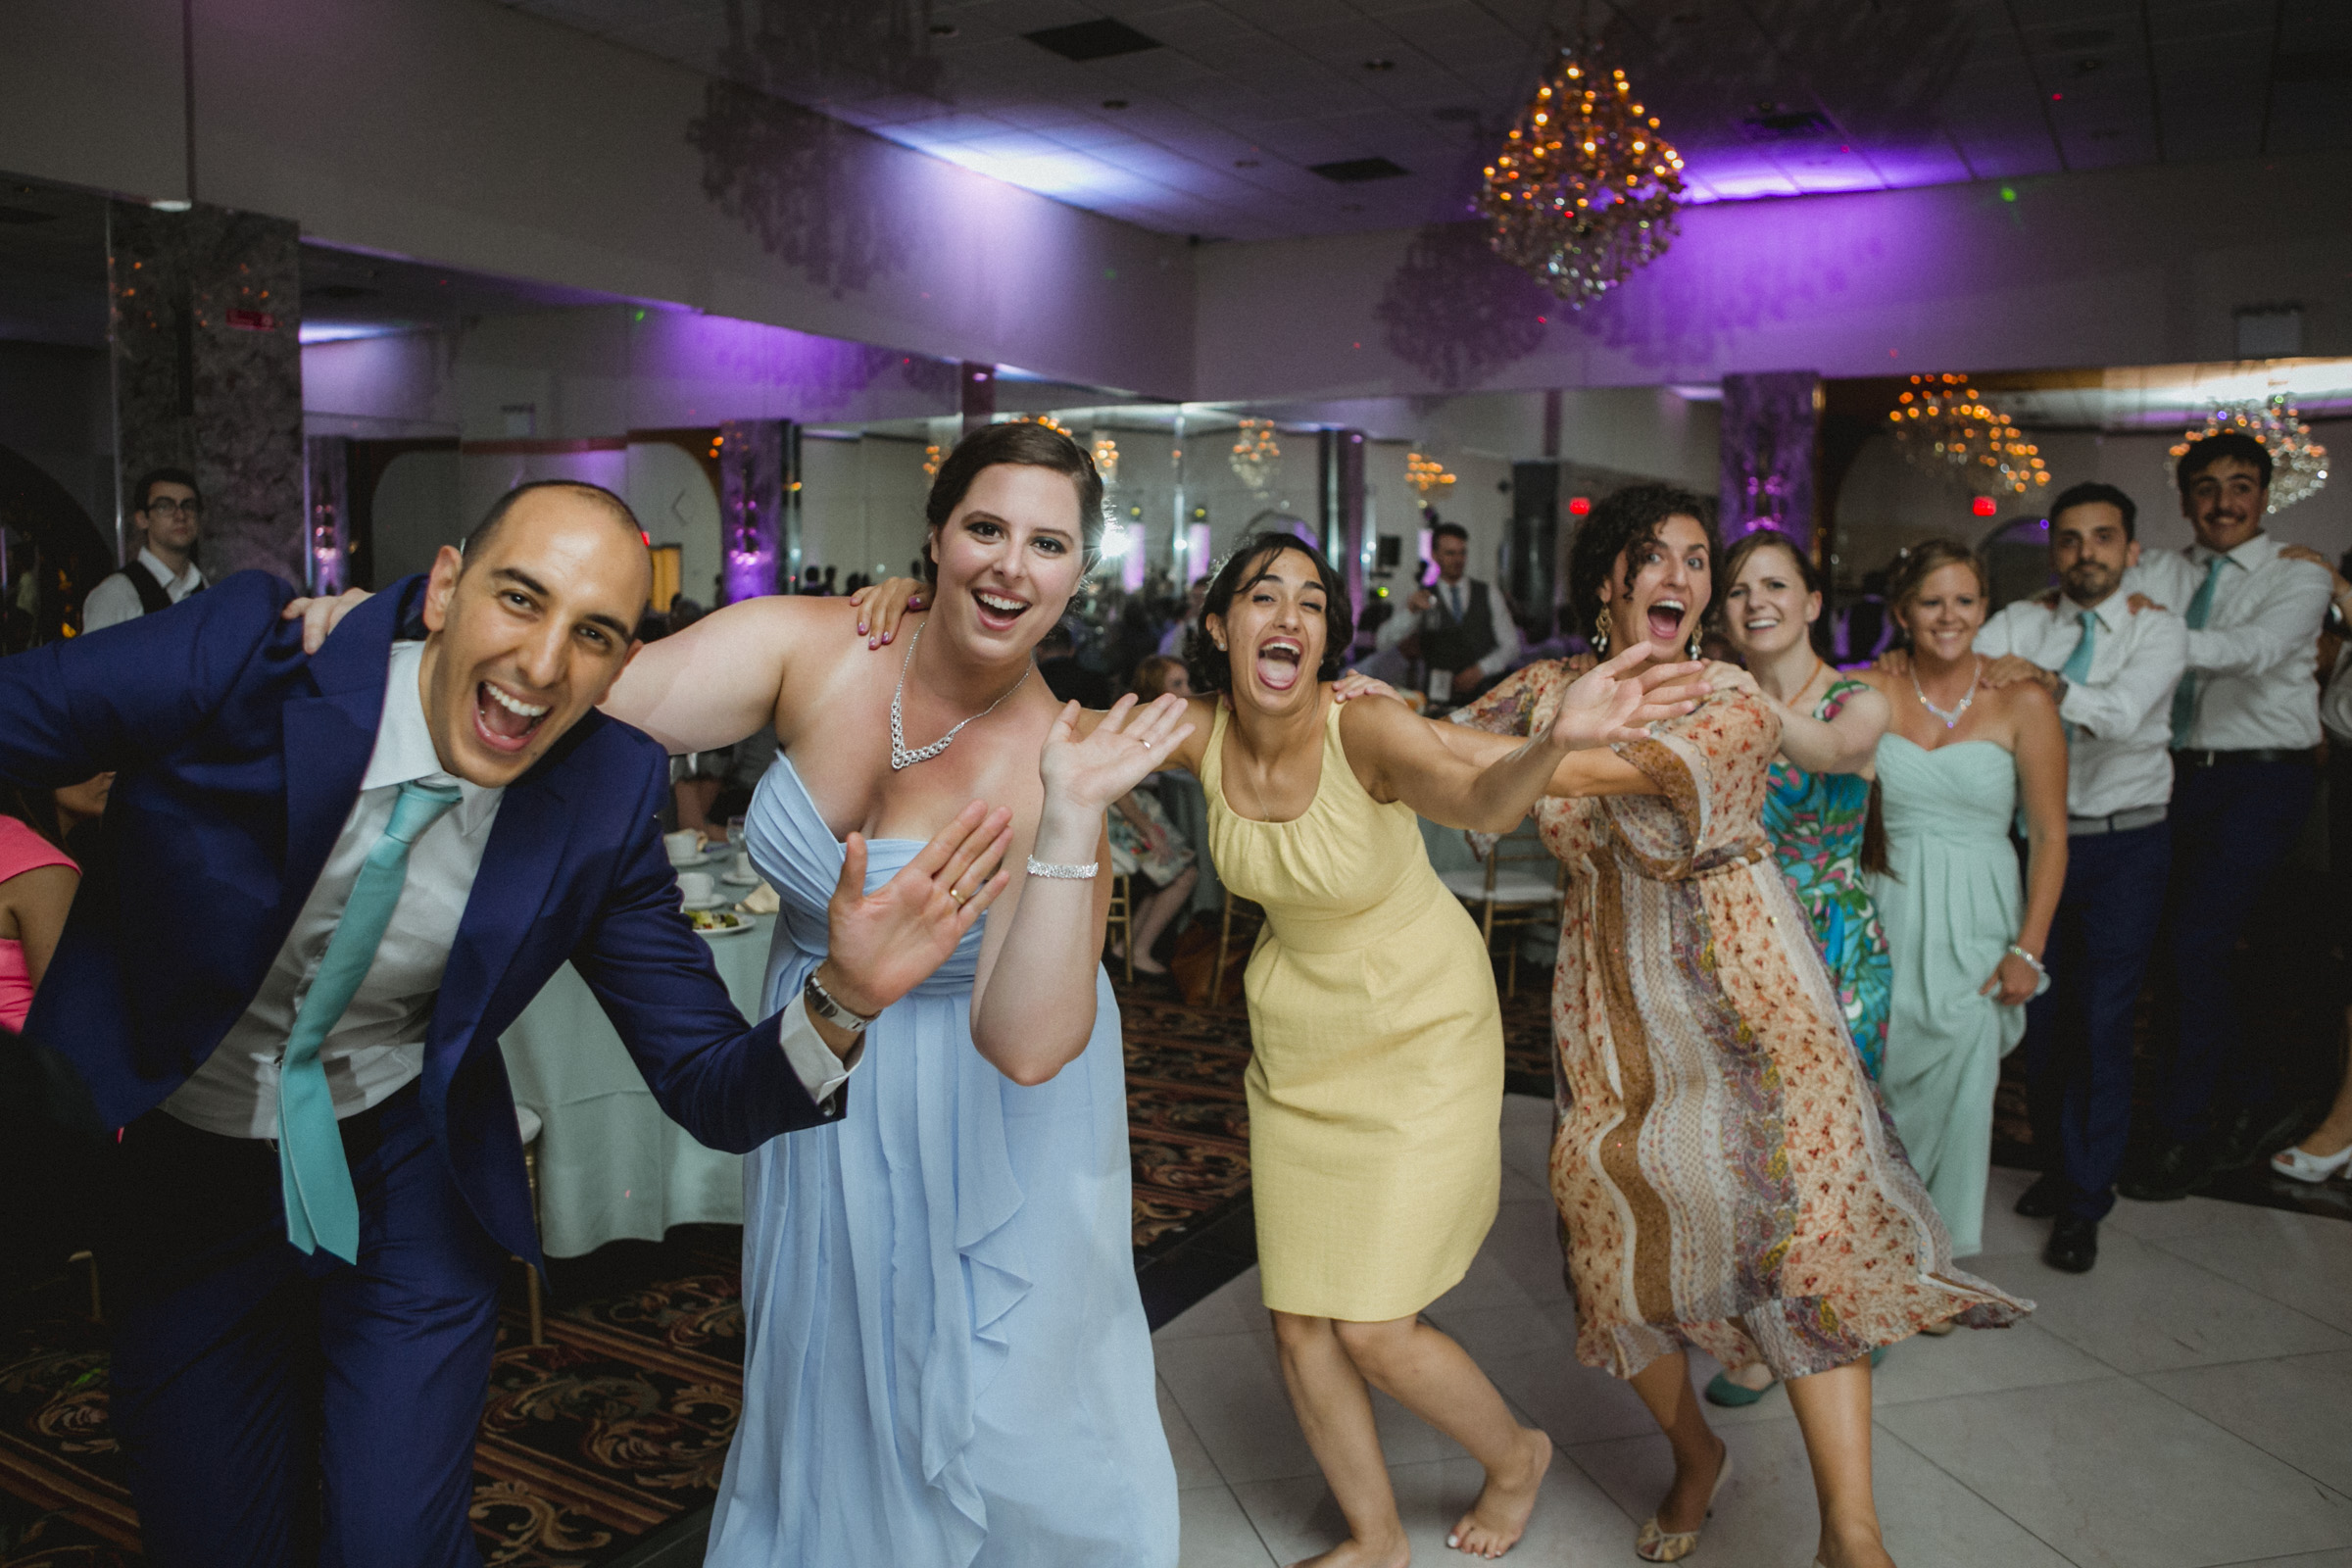 Guests wave during conga line | Scavello's on the Island | Manhattan wedding | Bronx Wedding | Cathy & Antonello's wedding | Amy Sims Photography